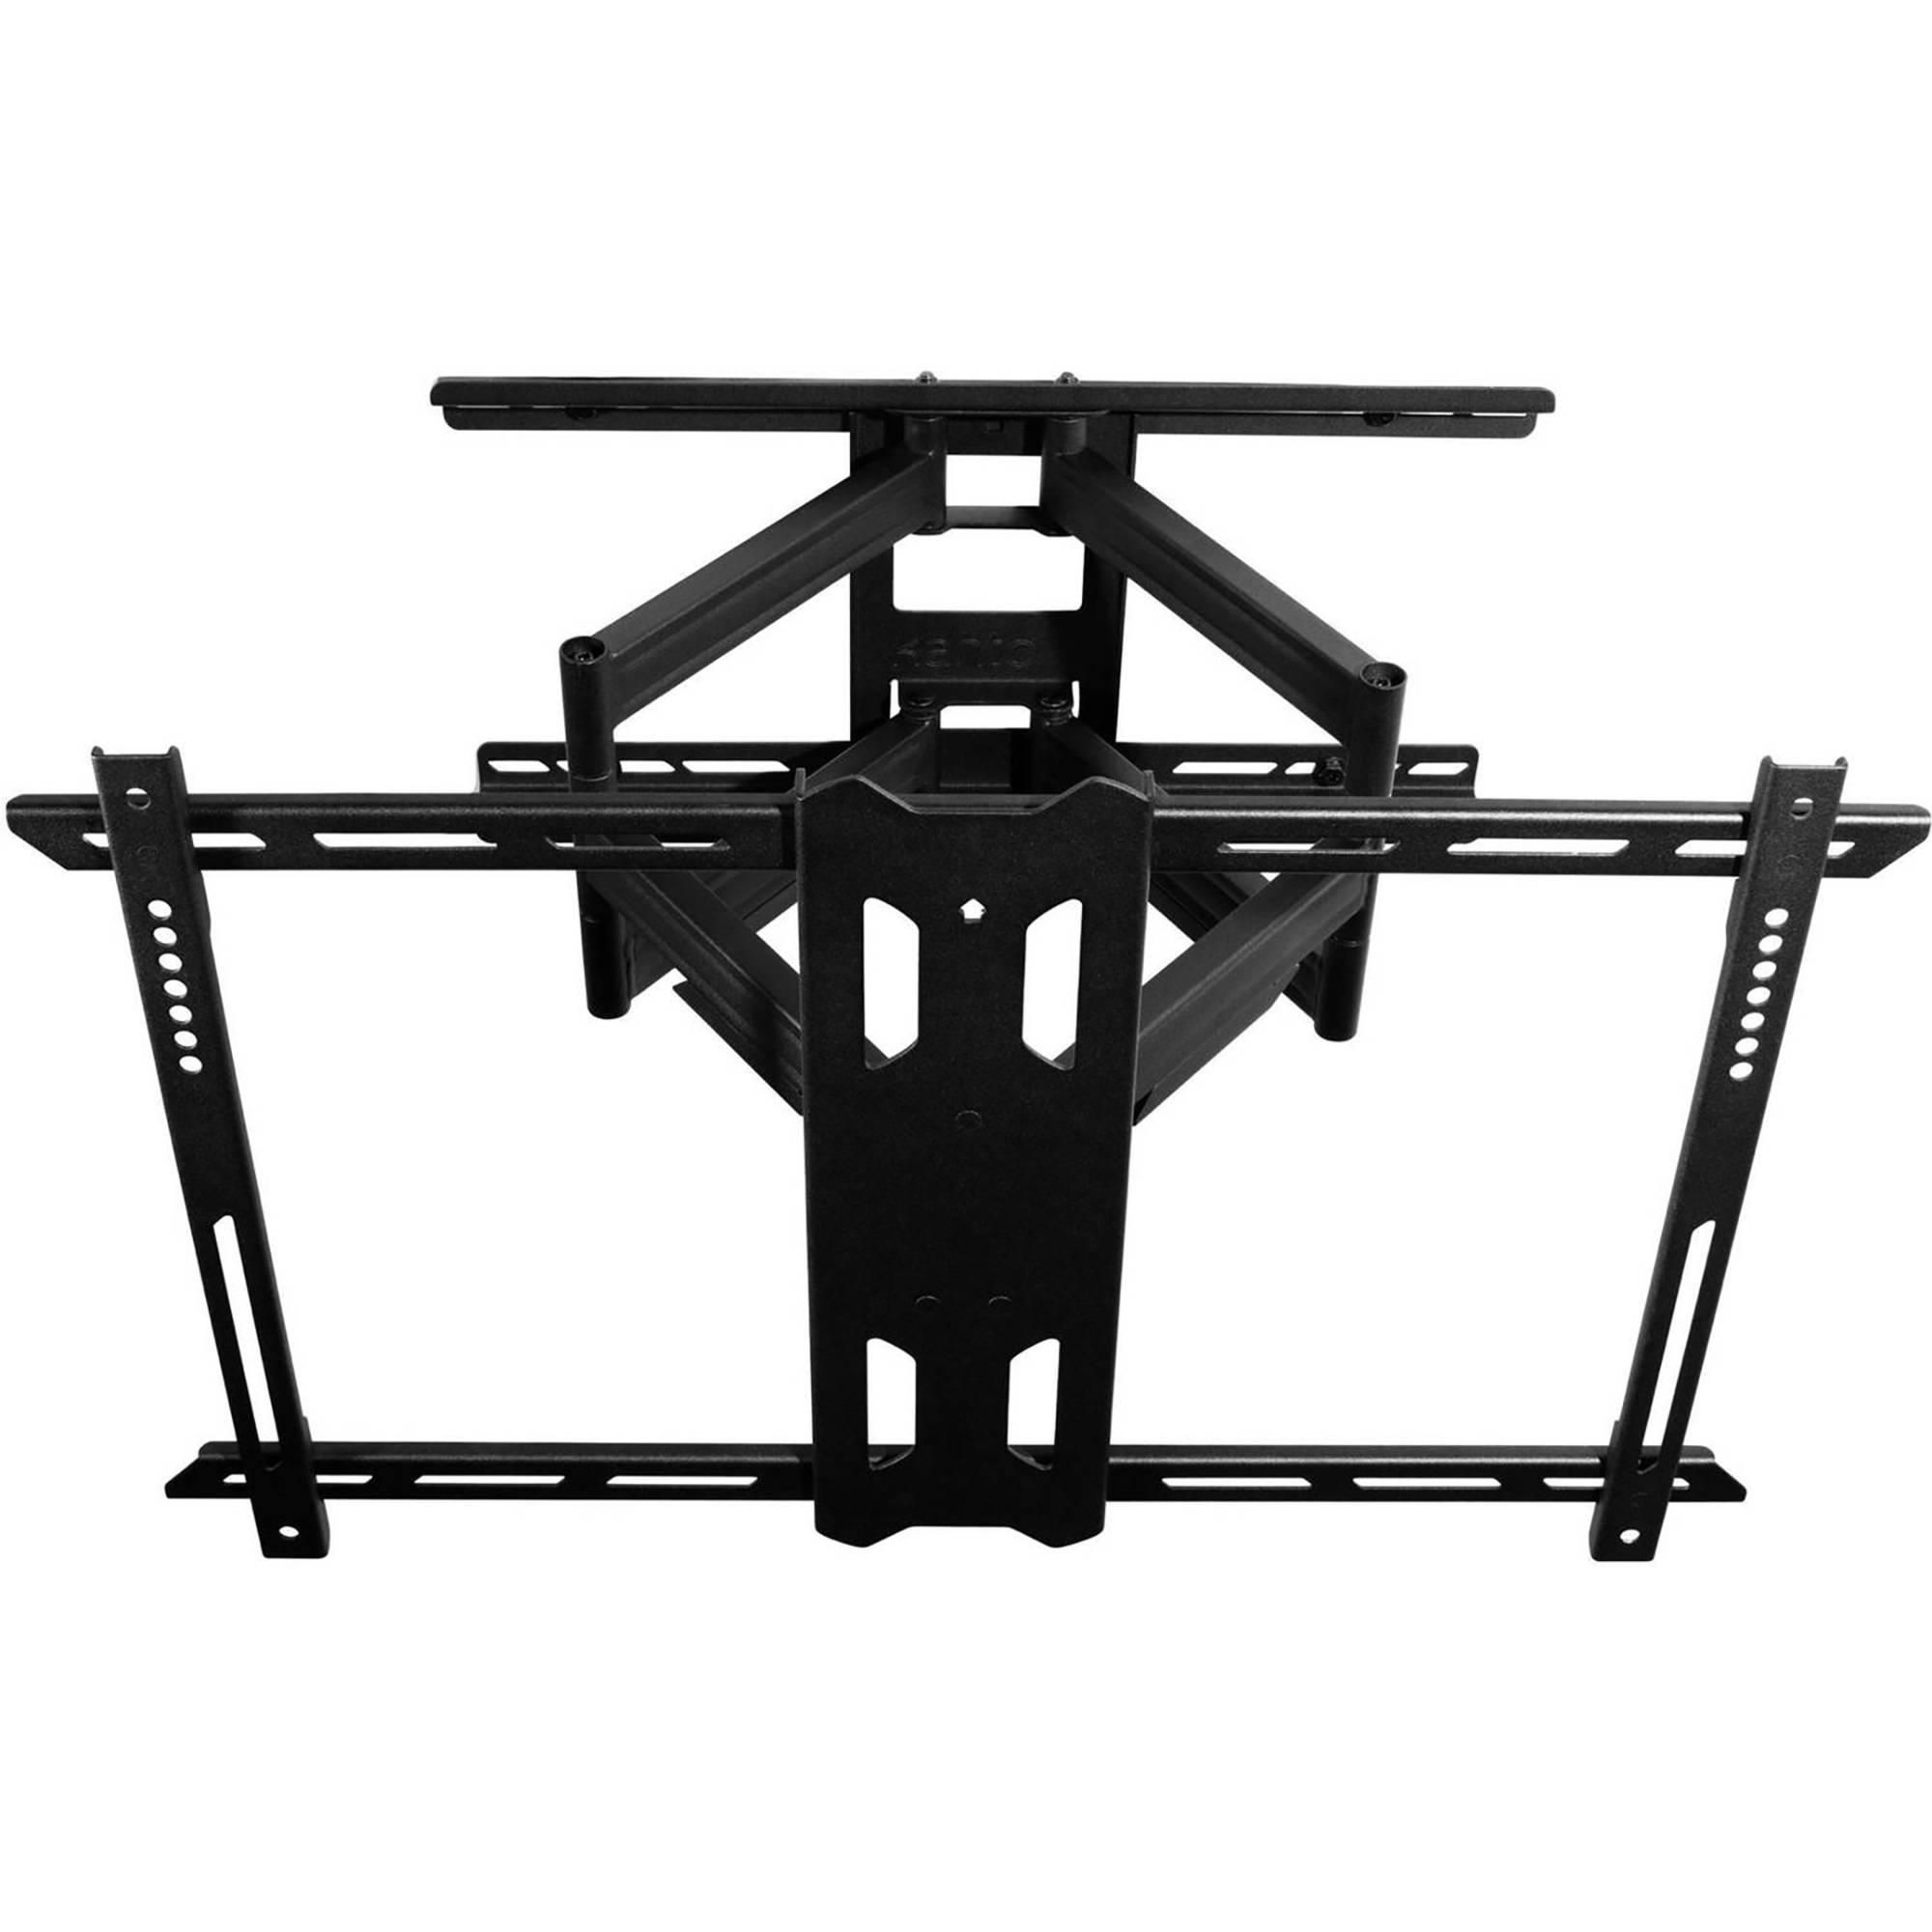 "PDX650 Full Motion TV Wall Mount for 37""-75"" HDTVs by Kanto"